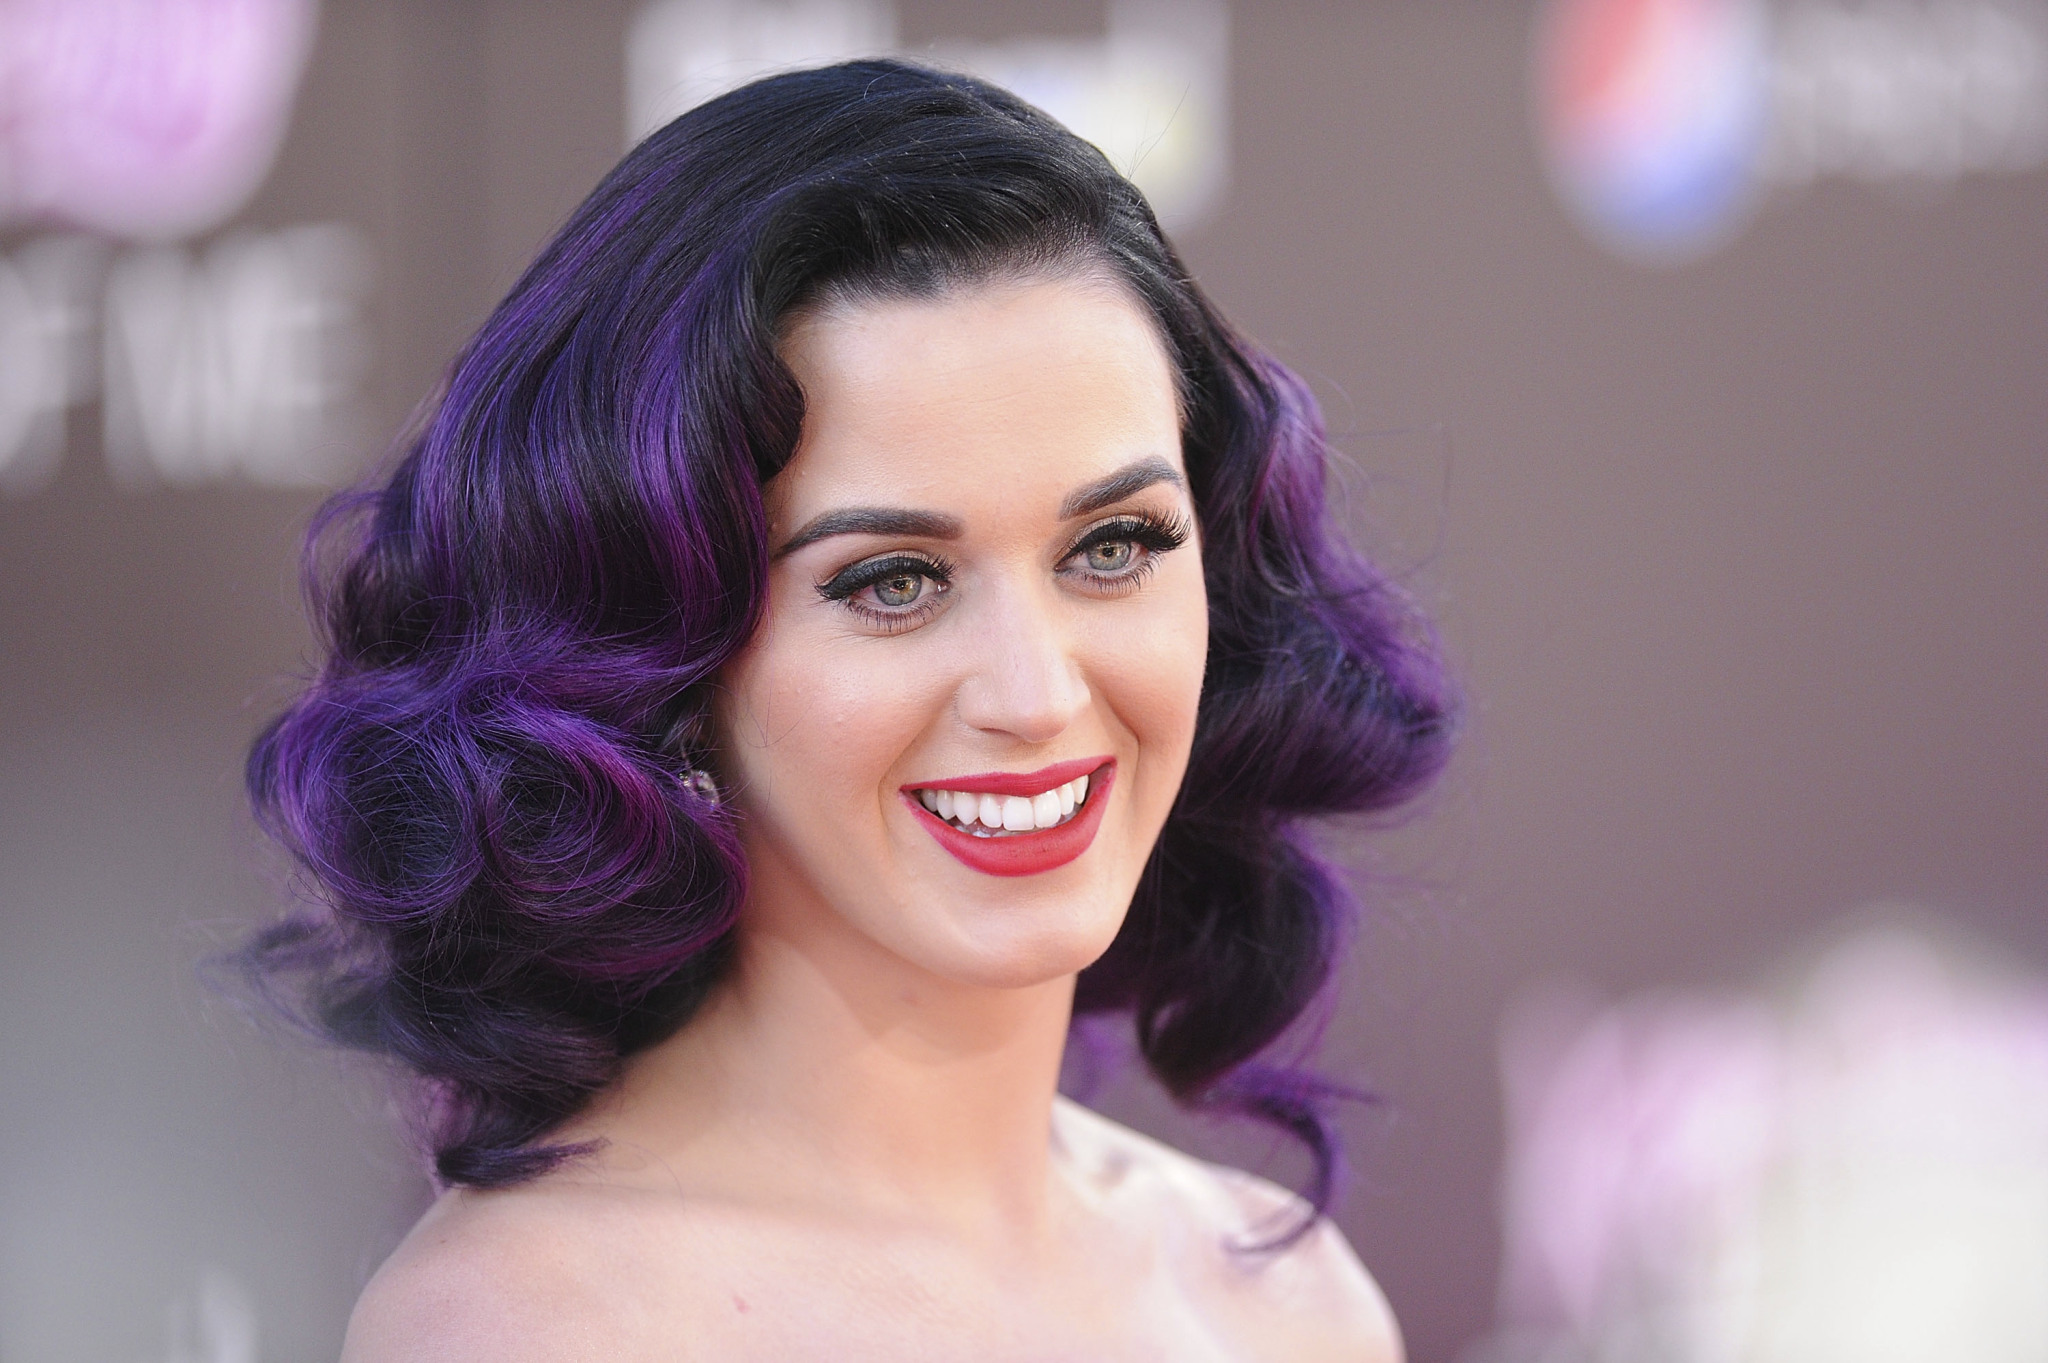 Katy Perry Confirms Las Vegas Residency At Resorts World